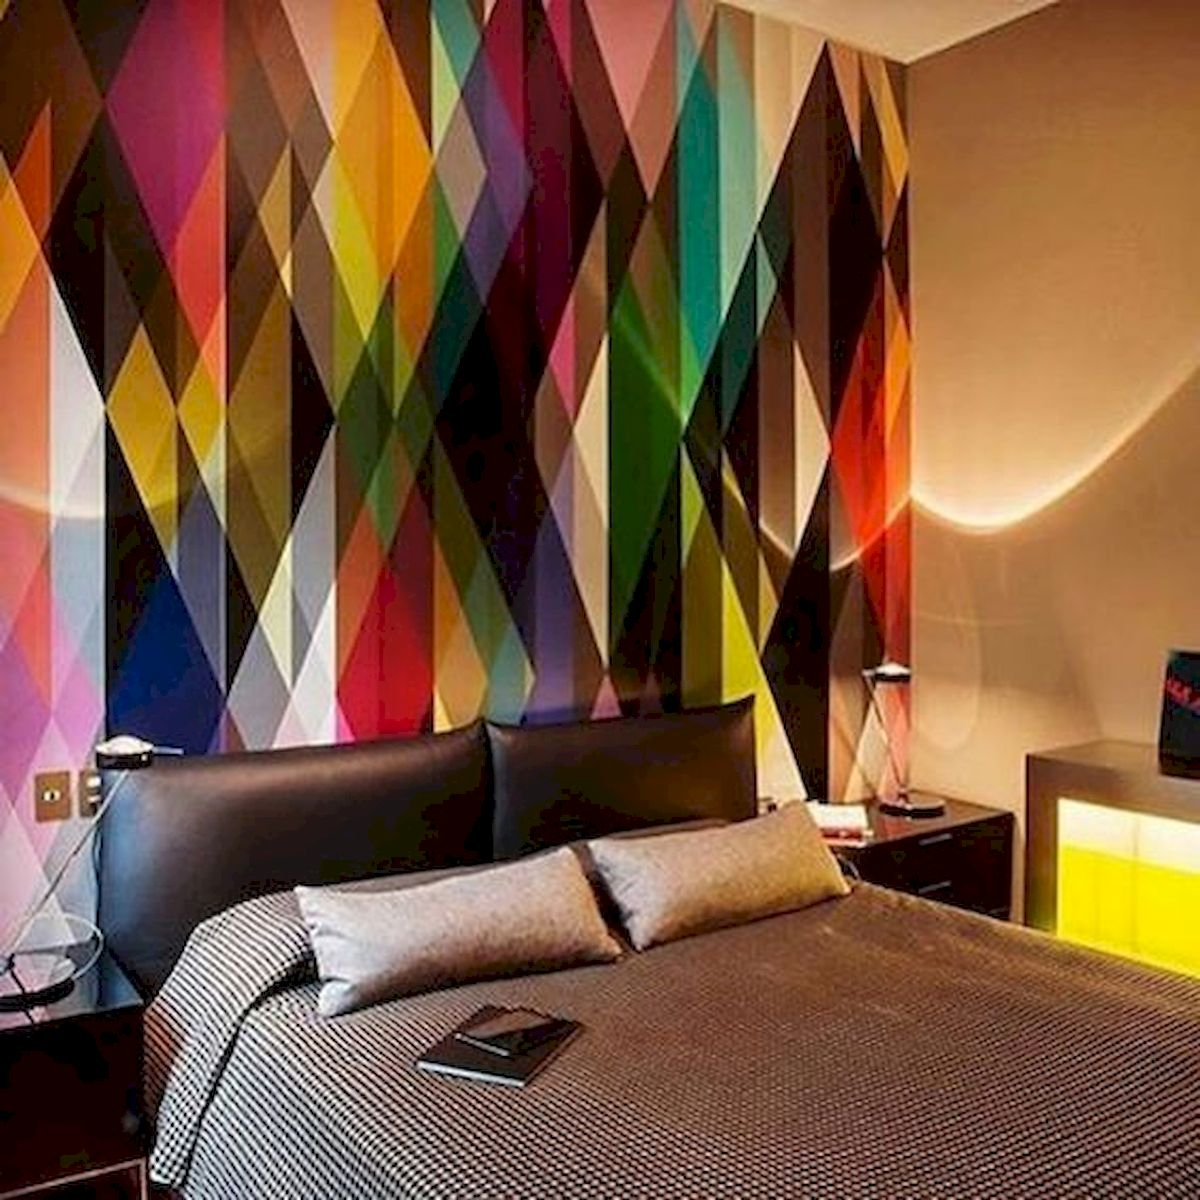 70 Beautiful DIY Colorful Bedroom Design Ideas and Remodel (22)